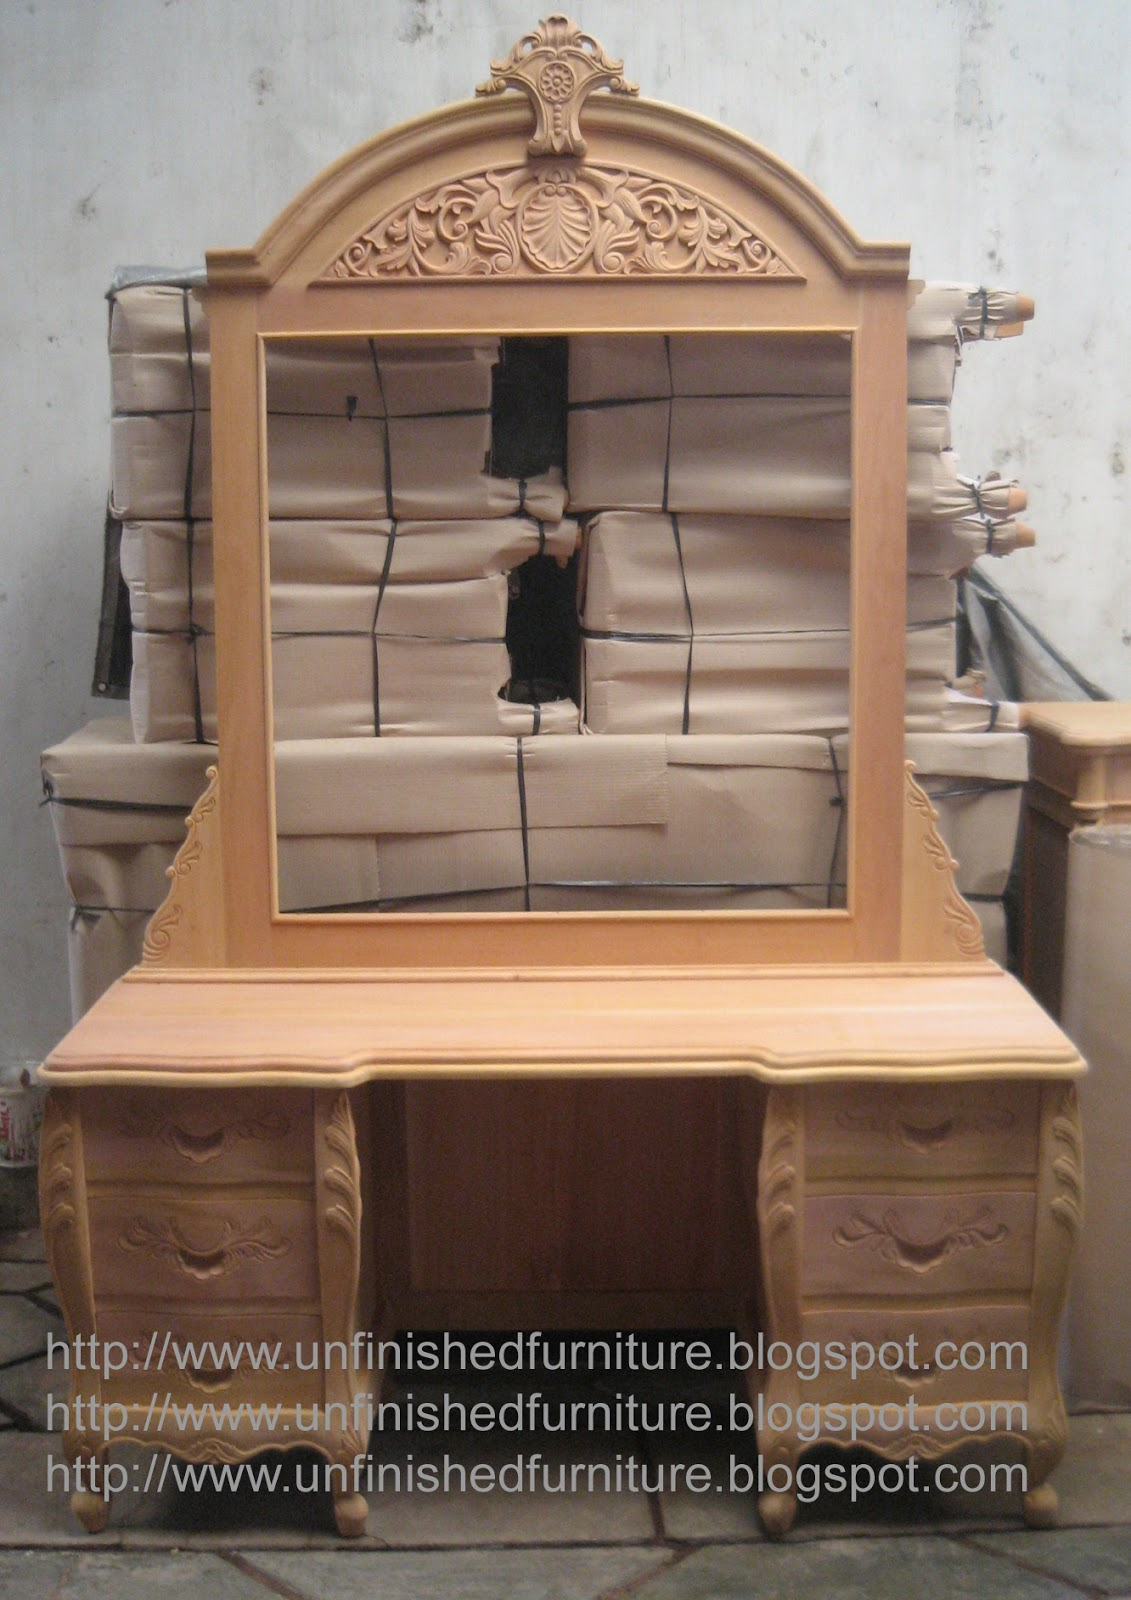 Victorian dressing table - Klasik Furniture Tolet Klasik Victorian Supplier Tolet Dressing Table Mentah Mahoni Jepara Supplier Mebel Klasik Mentah